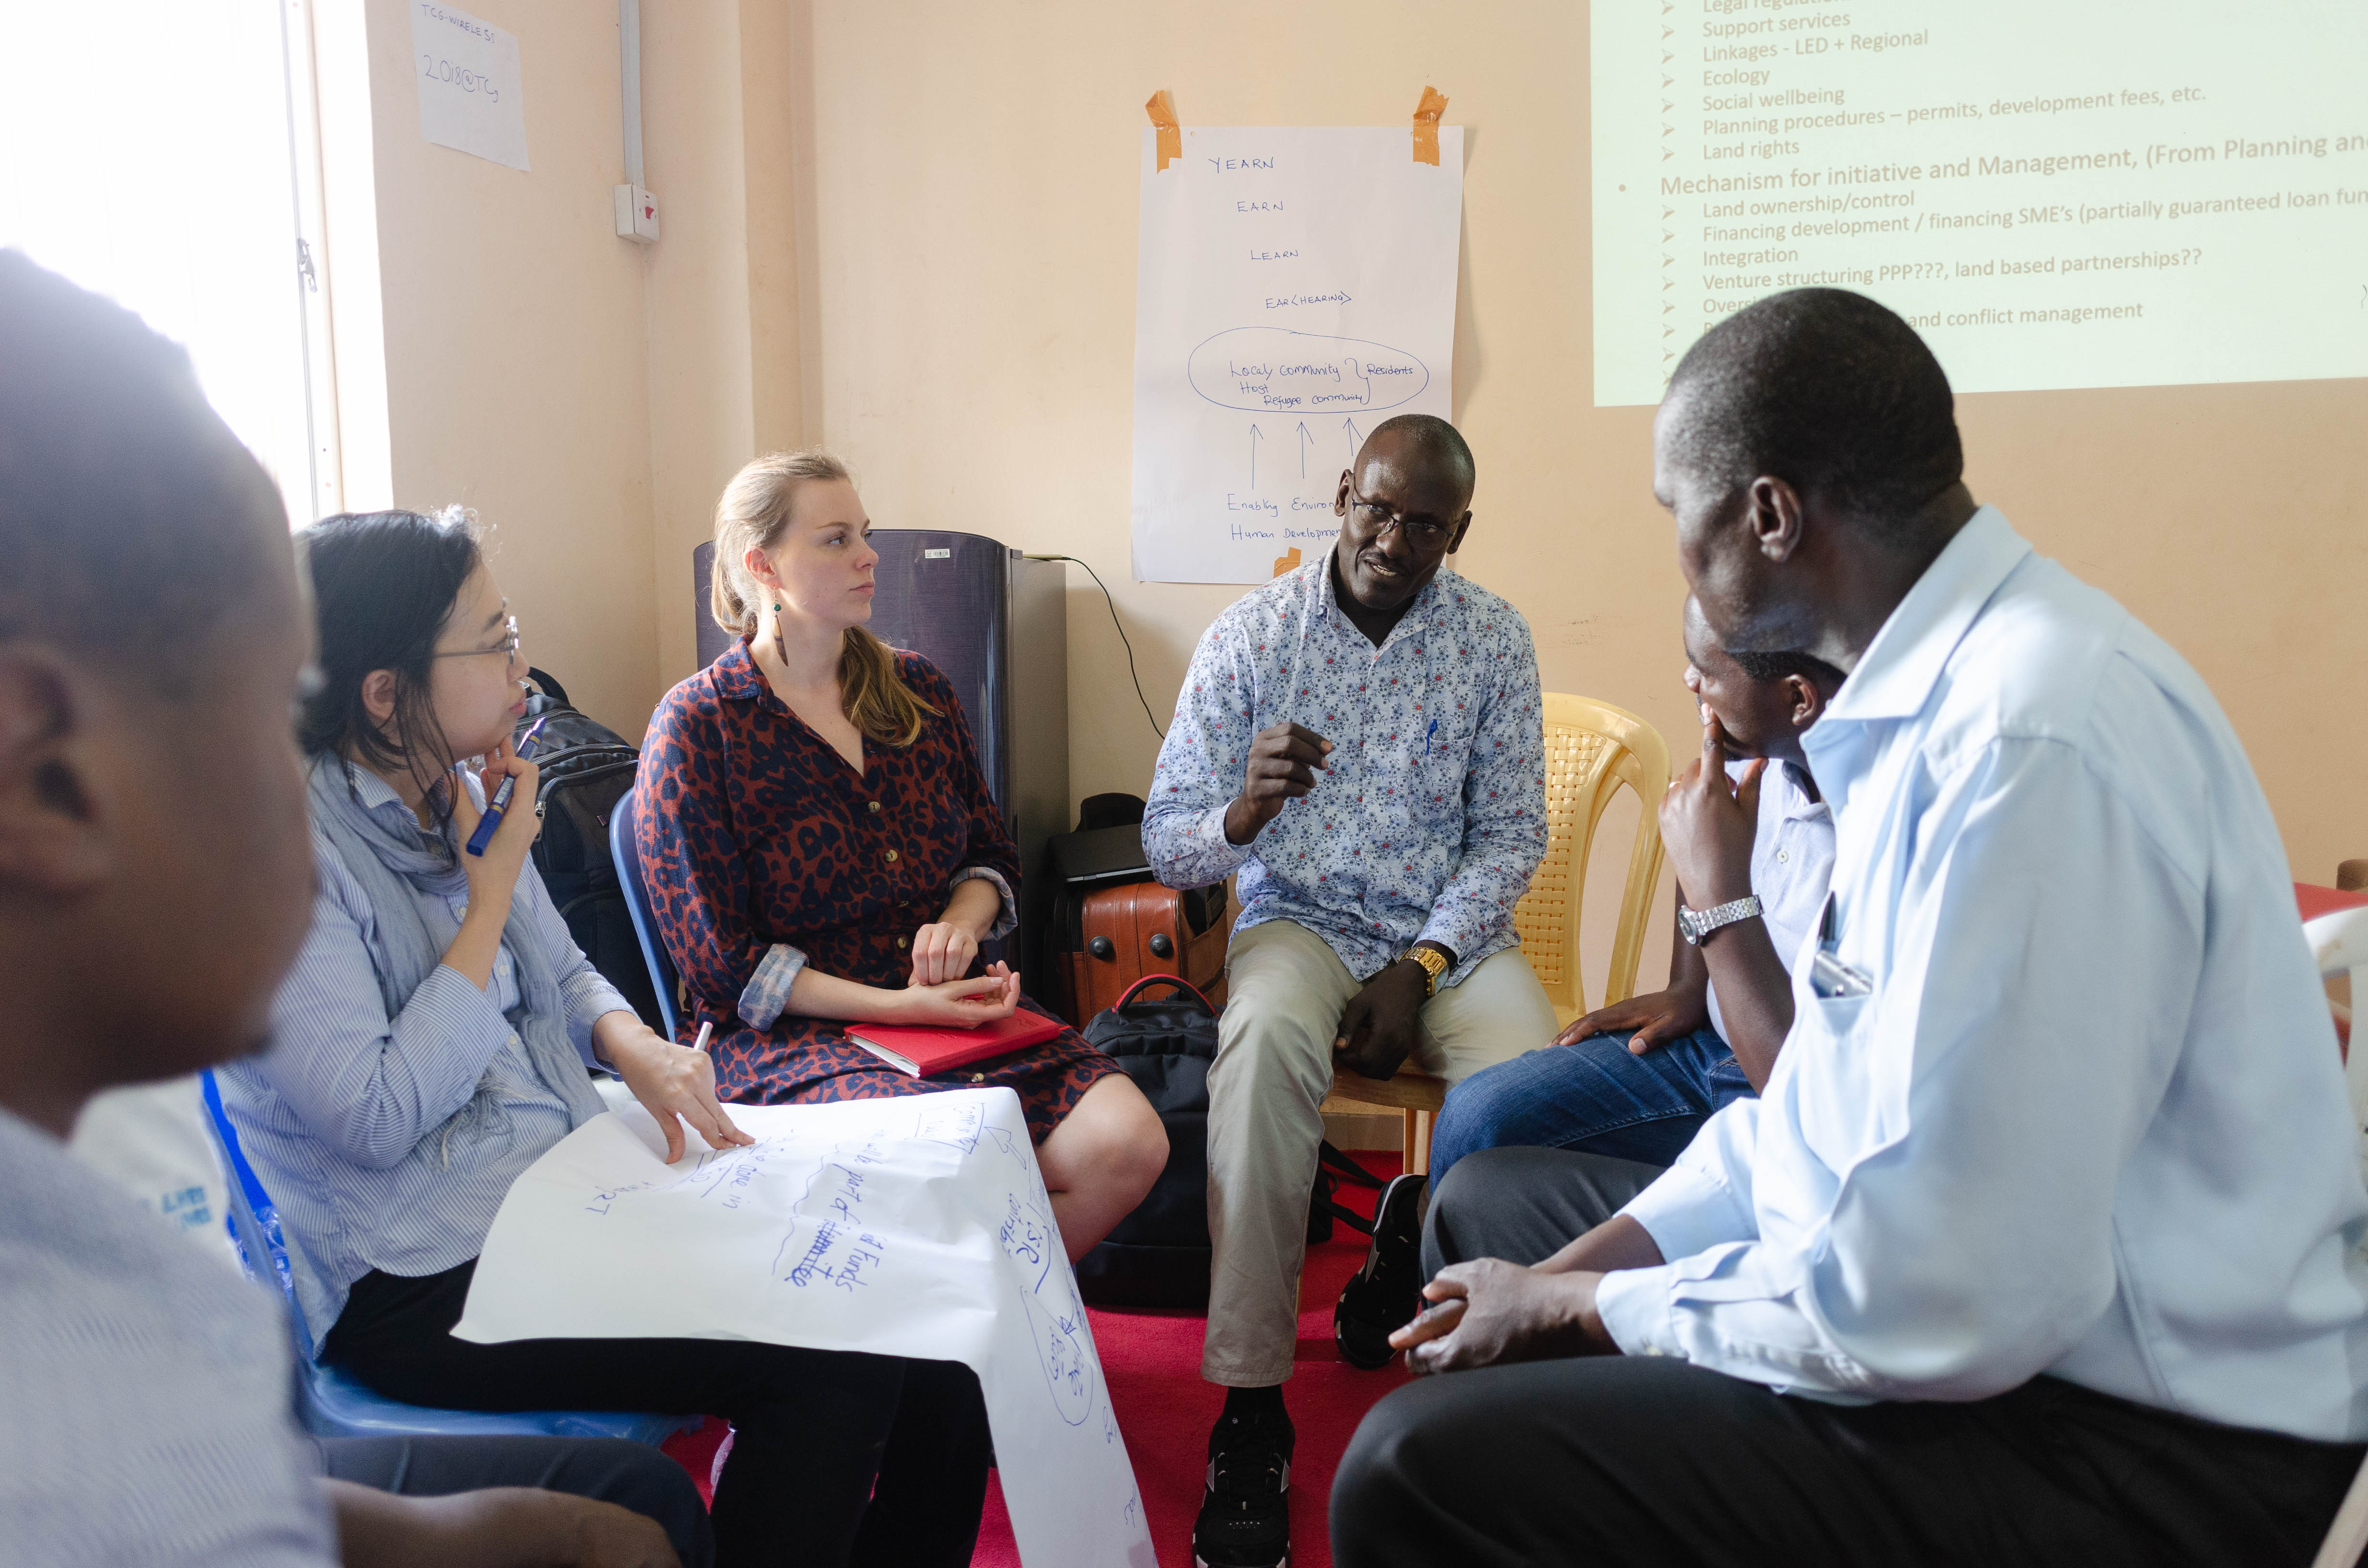 Participants broke into groups, facilitated by members from UN-Habitat, to discuss on the vision of the Corridor